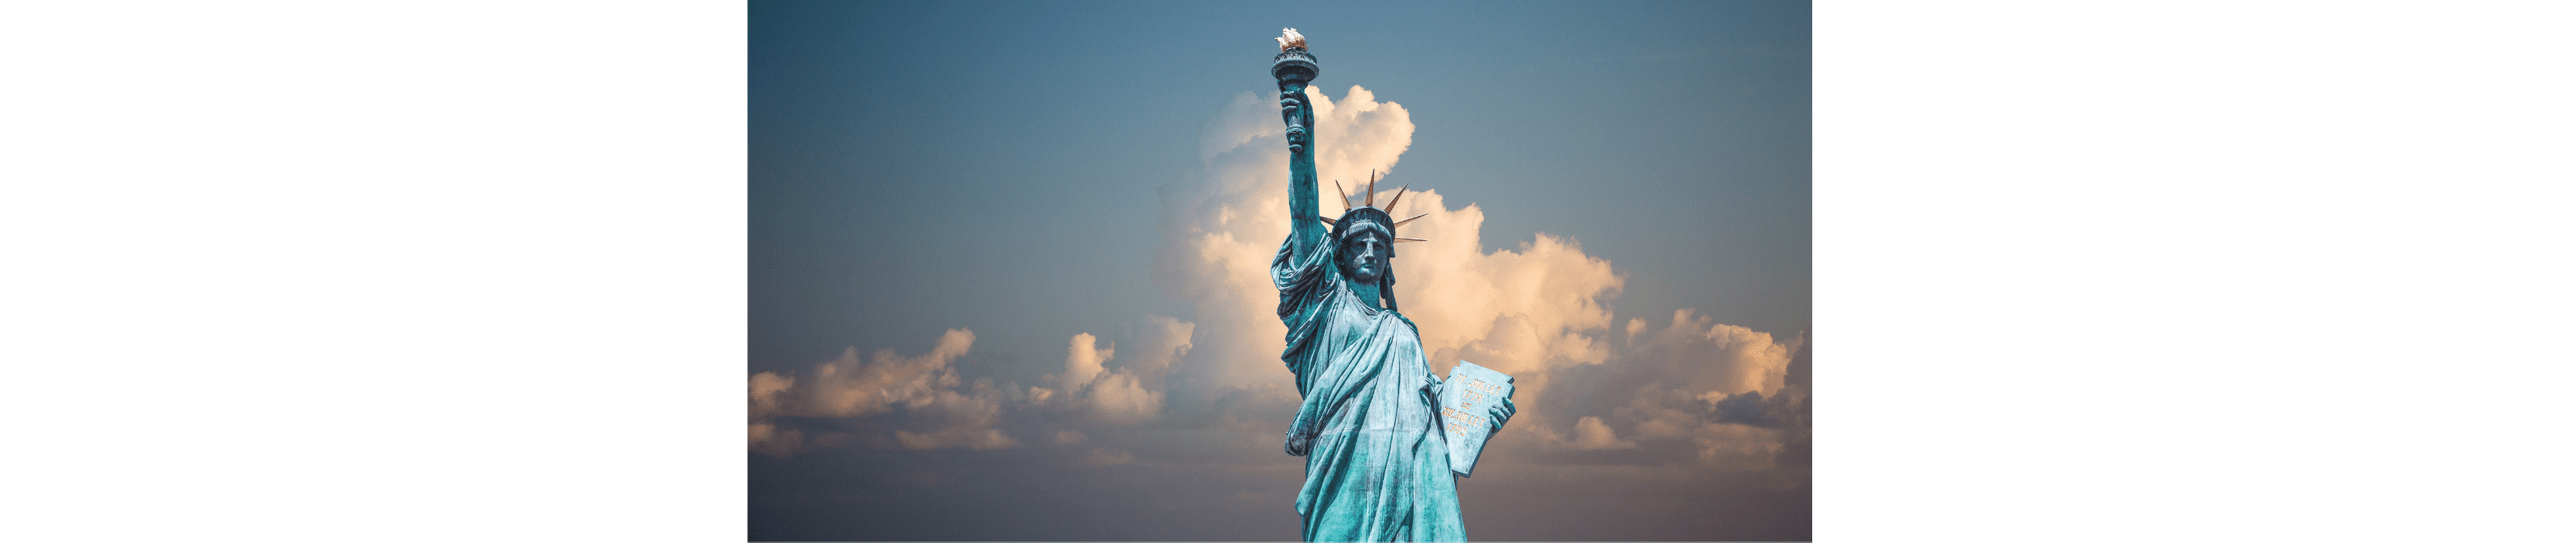 Image of the statue of liberty in New York